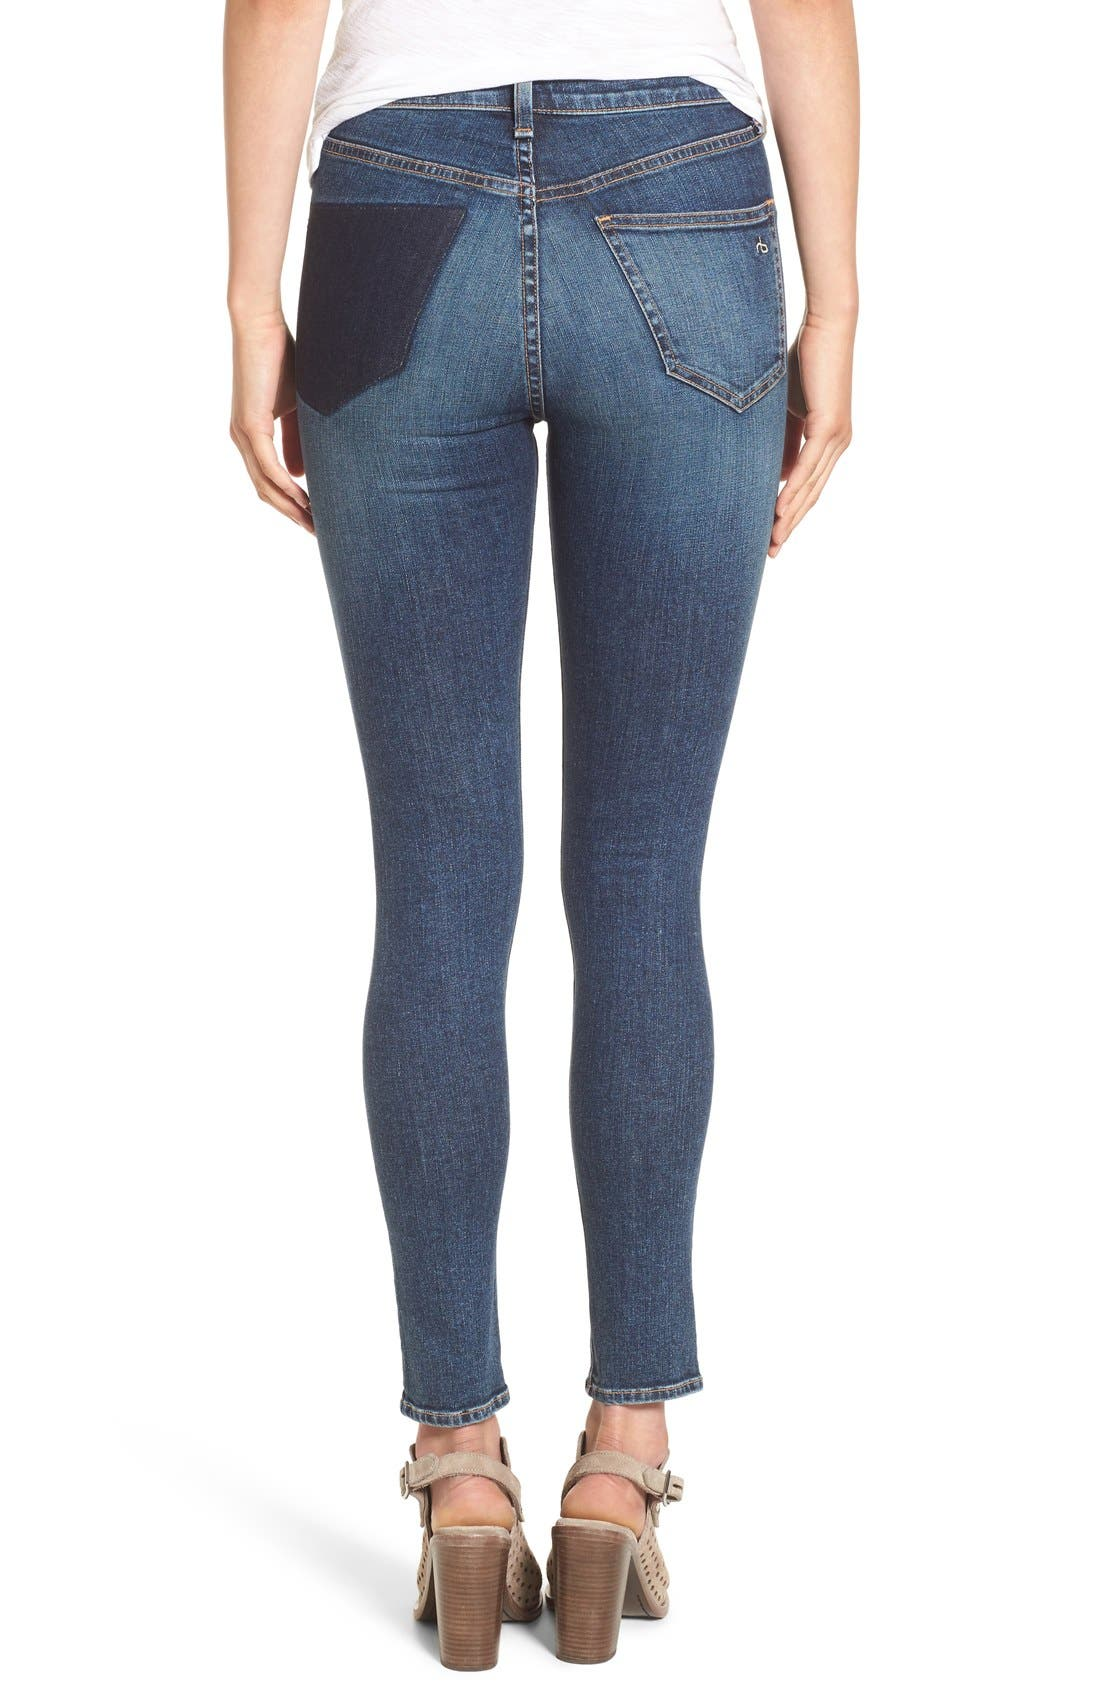 Alternate Image 1 Selected - rag & bone/JEAN 'Dive' Jeans (Eddy)